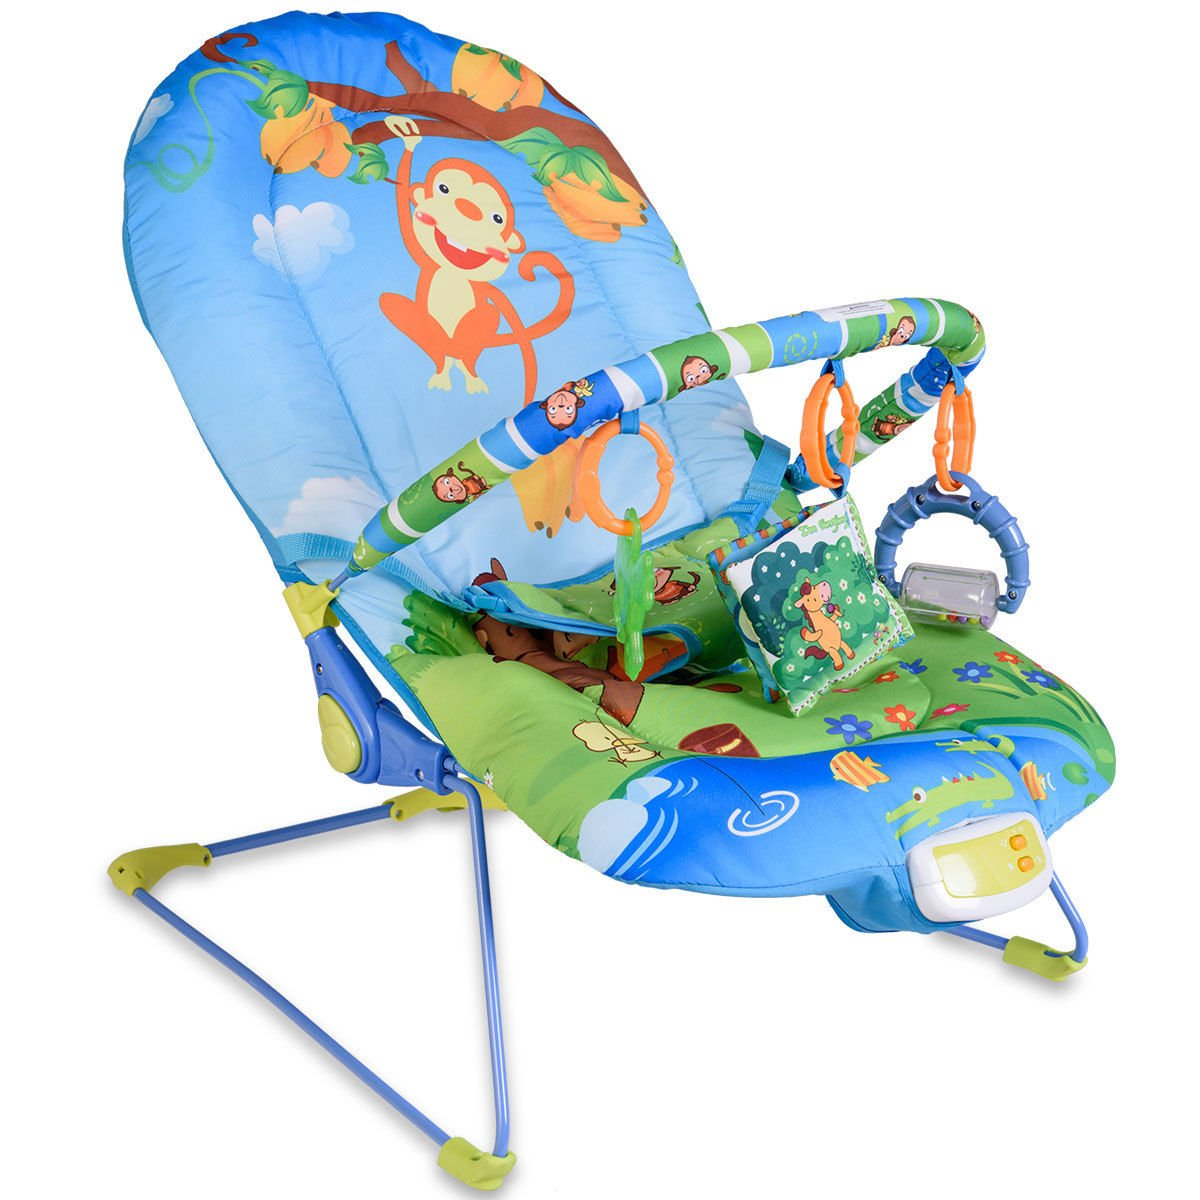 Costzon Baby Rocker Chair, Adjustable Reclining Chair with Music/Vibration Box/Toys, Baby Bouncer (Monkey)